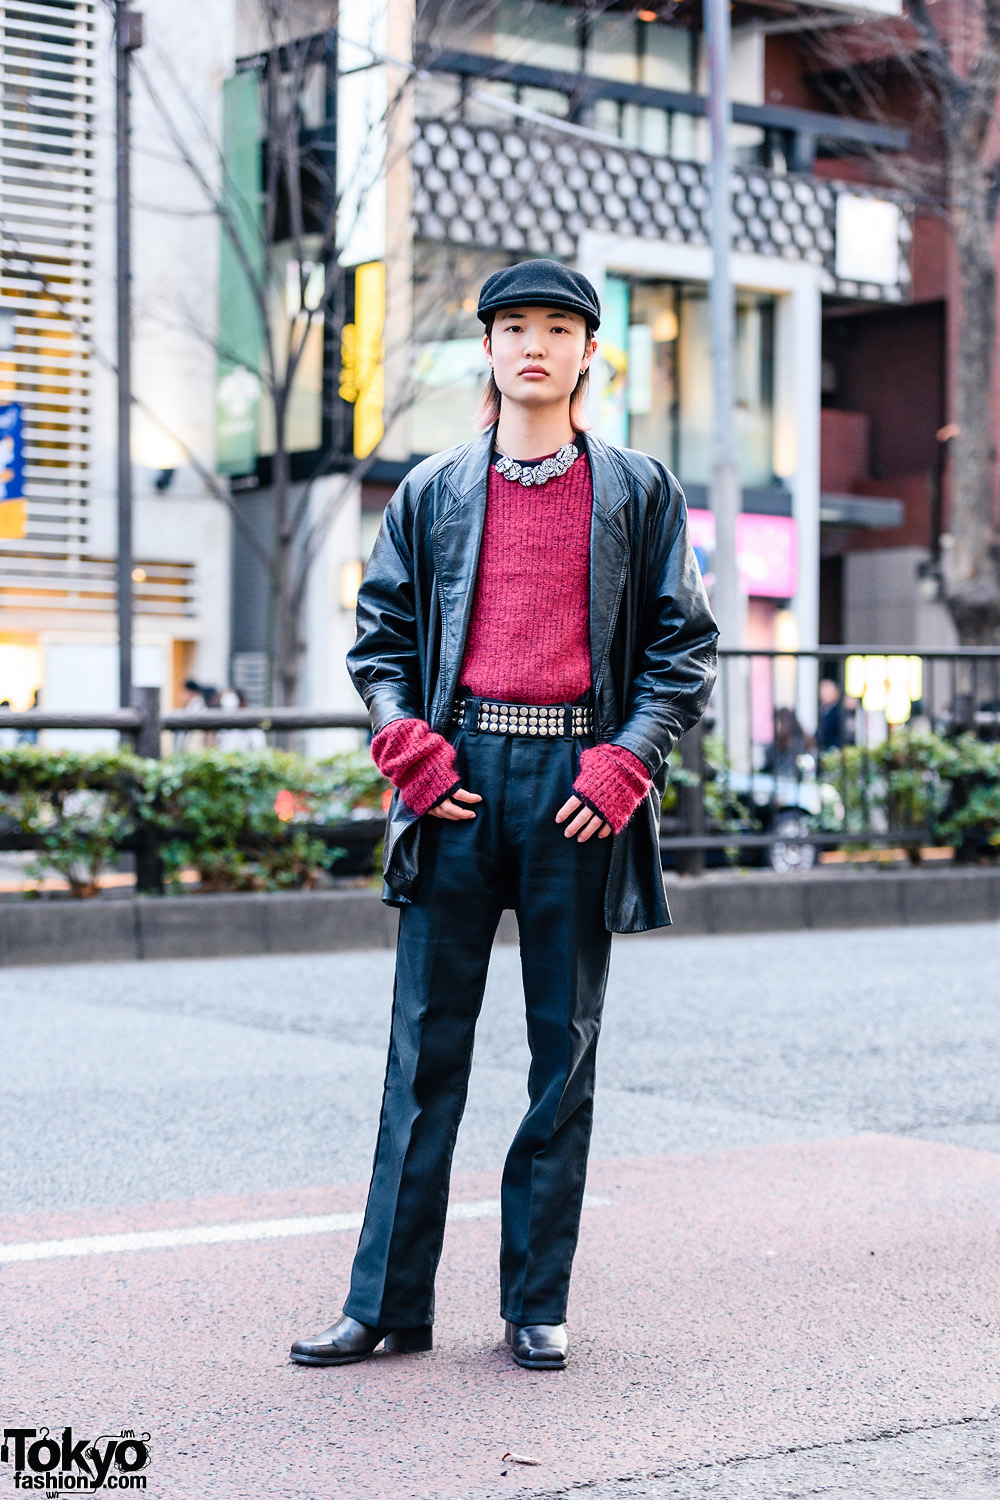 Black & Red Tokyo Street Style w/ Newsboy Cap, Christopher Nemeth Rope Print Necklace, Knit Sweater, Leather Jacket & John Lawrence Sullivan Leather Boots